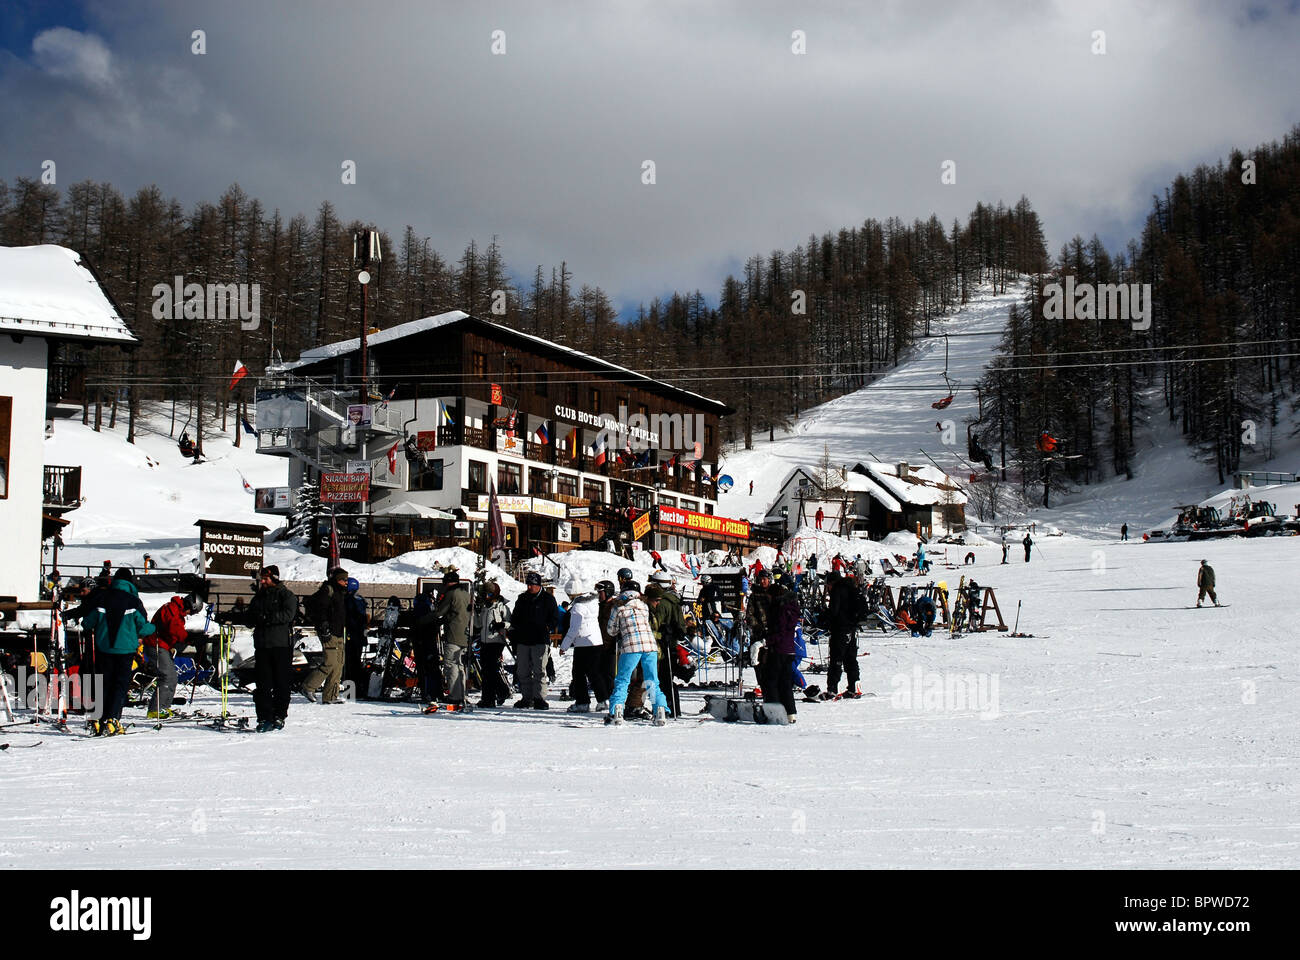 Winter sport. Skiing Sauze D'Oulx, Italy - Stock Image